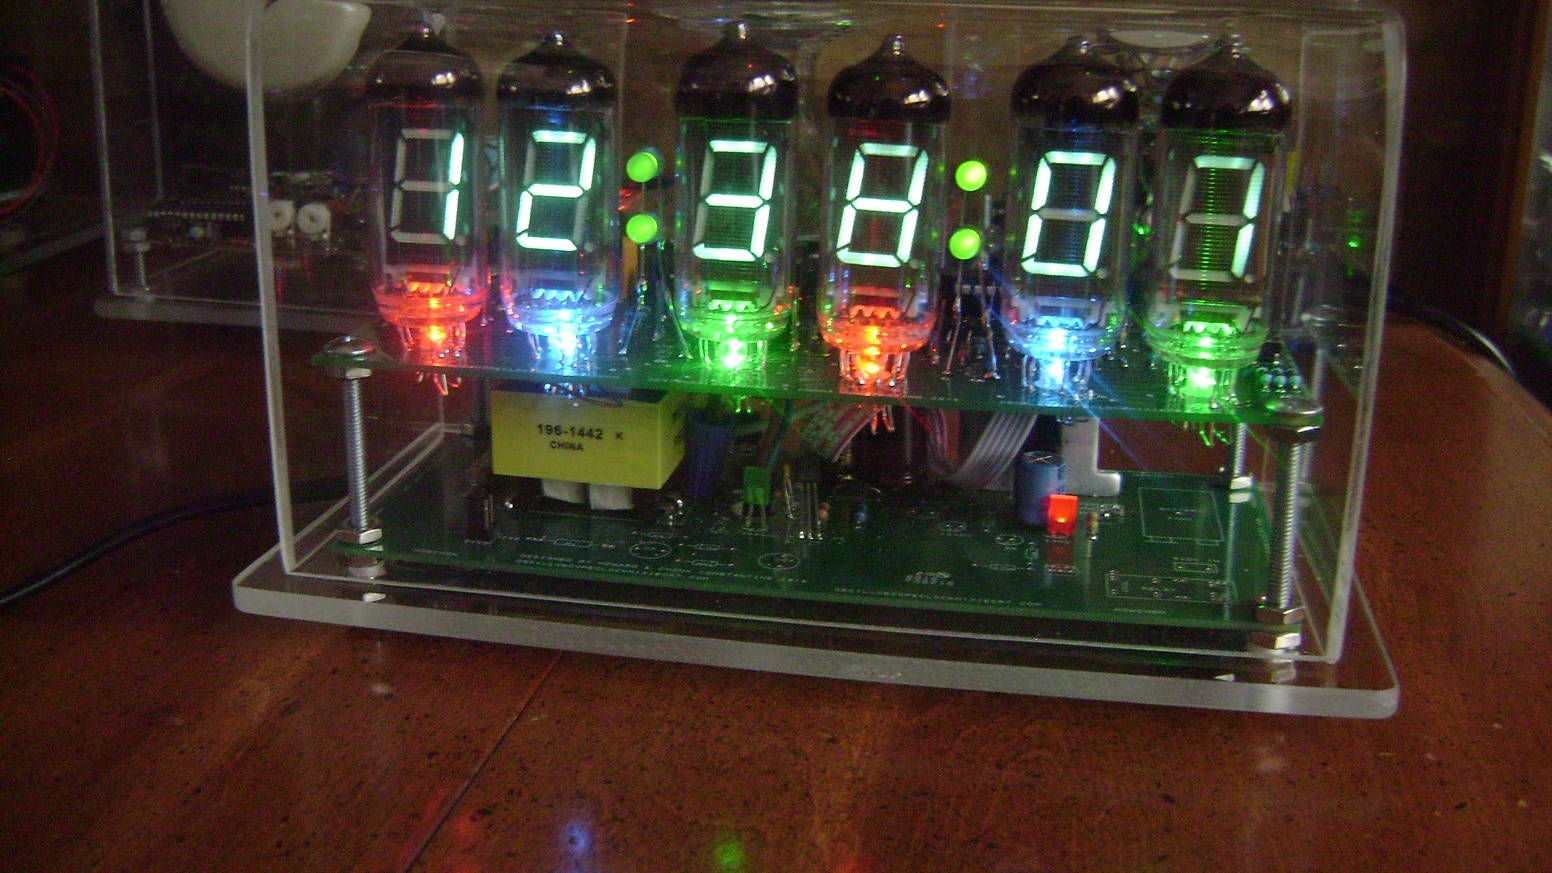 The Vfd Clock Using Iv 11 Tubes With Rgb Led Underlighting By Howard Fashion Lighting Controller Circuit Schematic Circuits